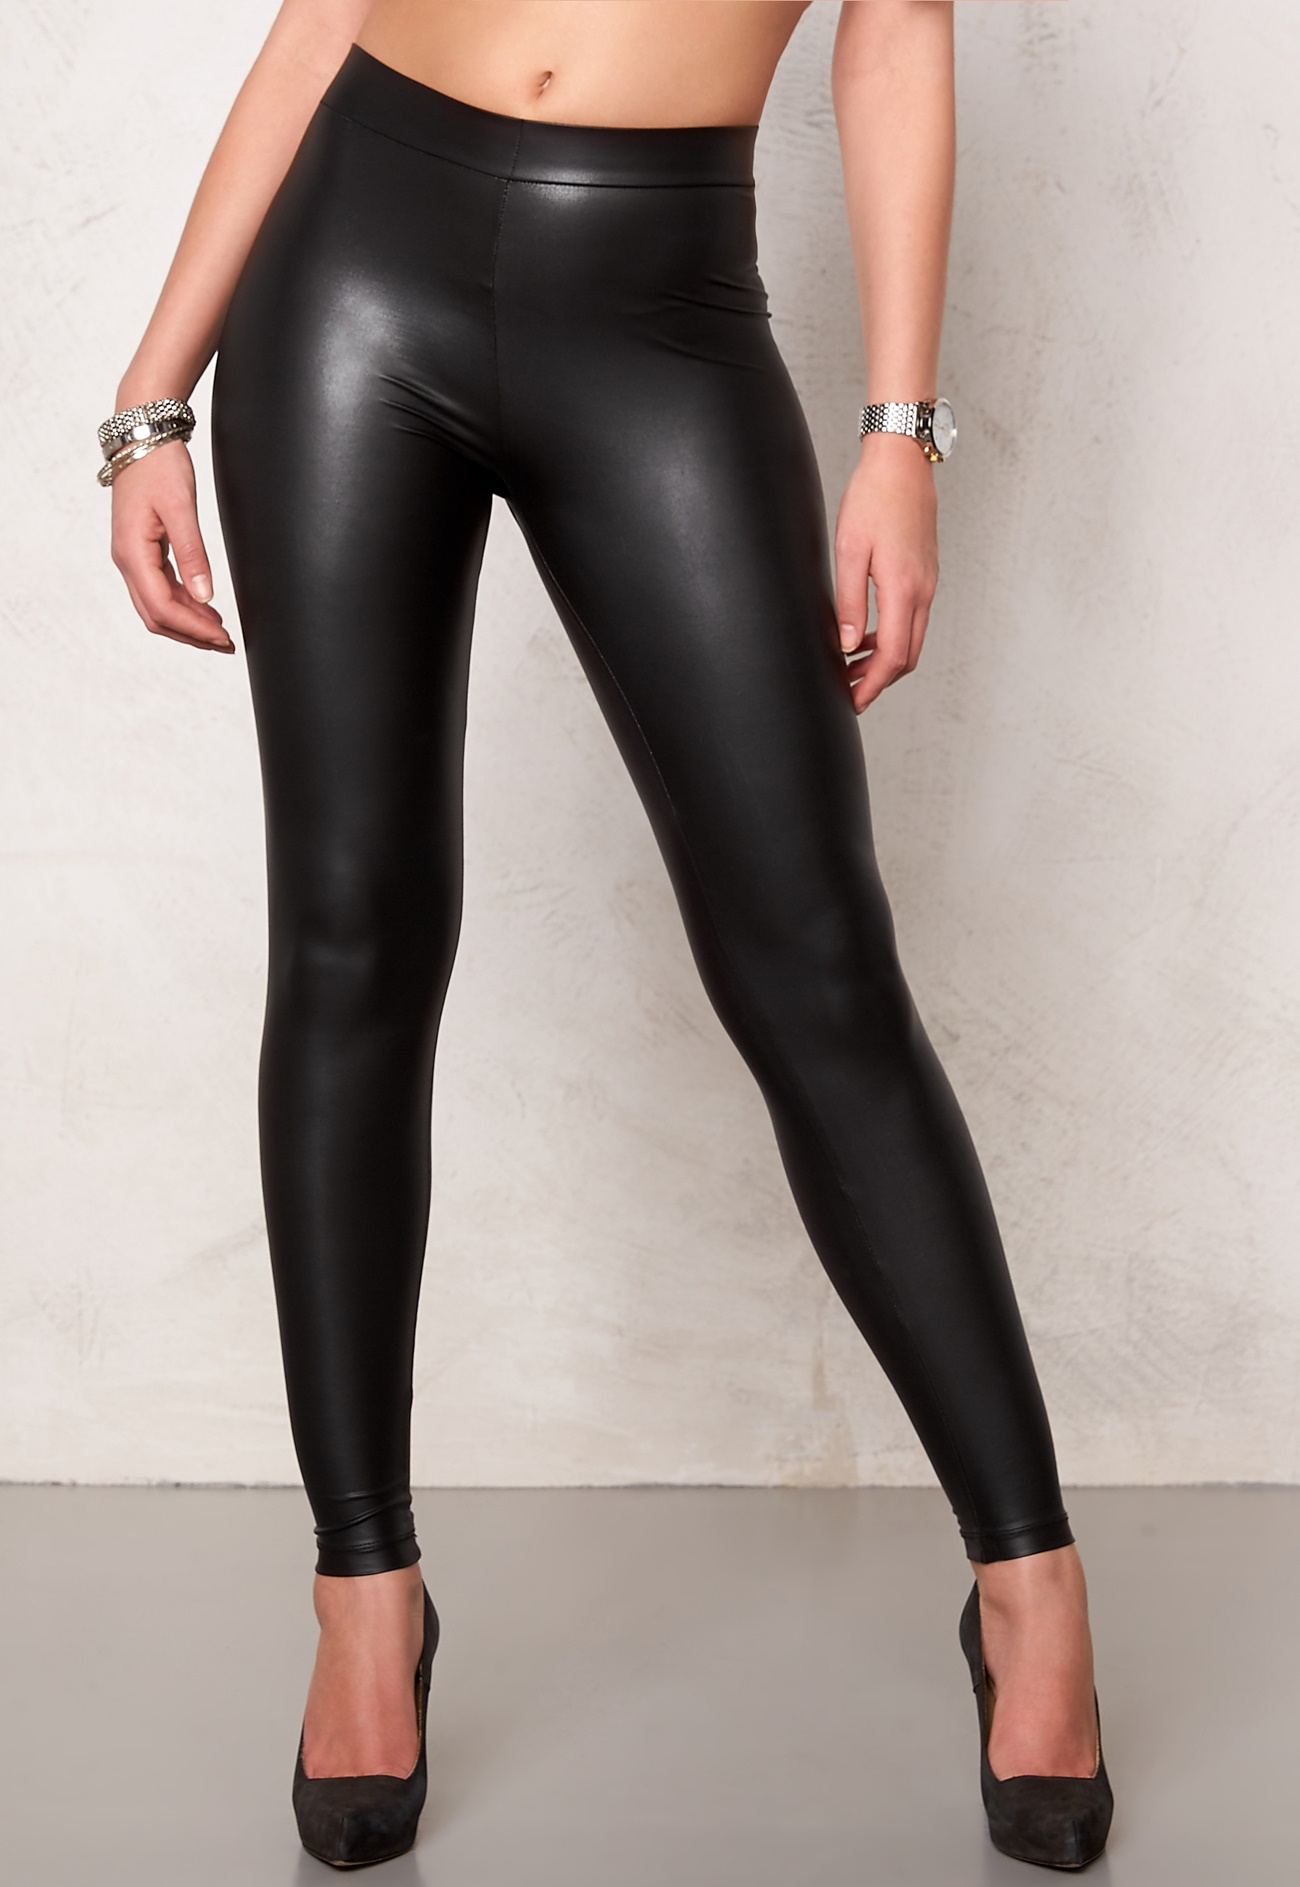 Cute & comfortable, Express women's leggings are perfect for a day in or a night out. Shop high waisted, lace and black leggings for women at Express!